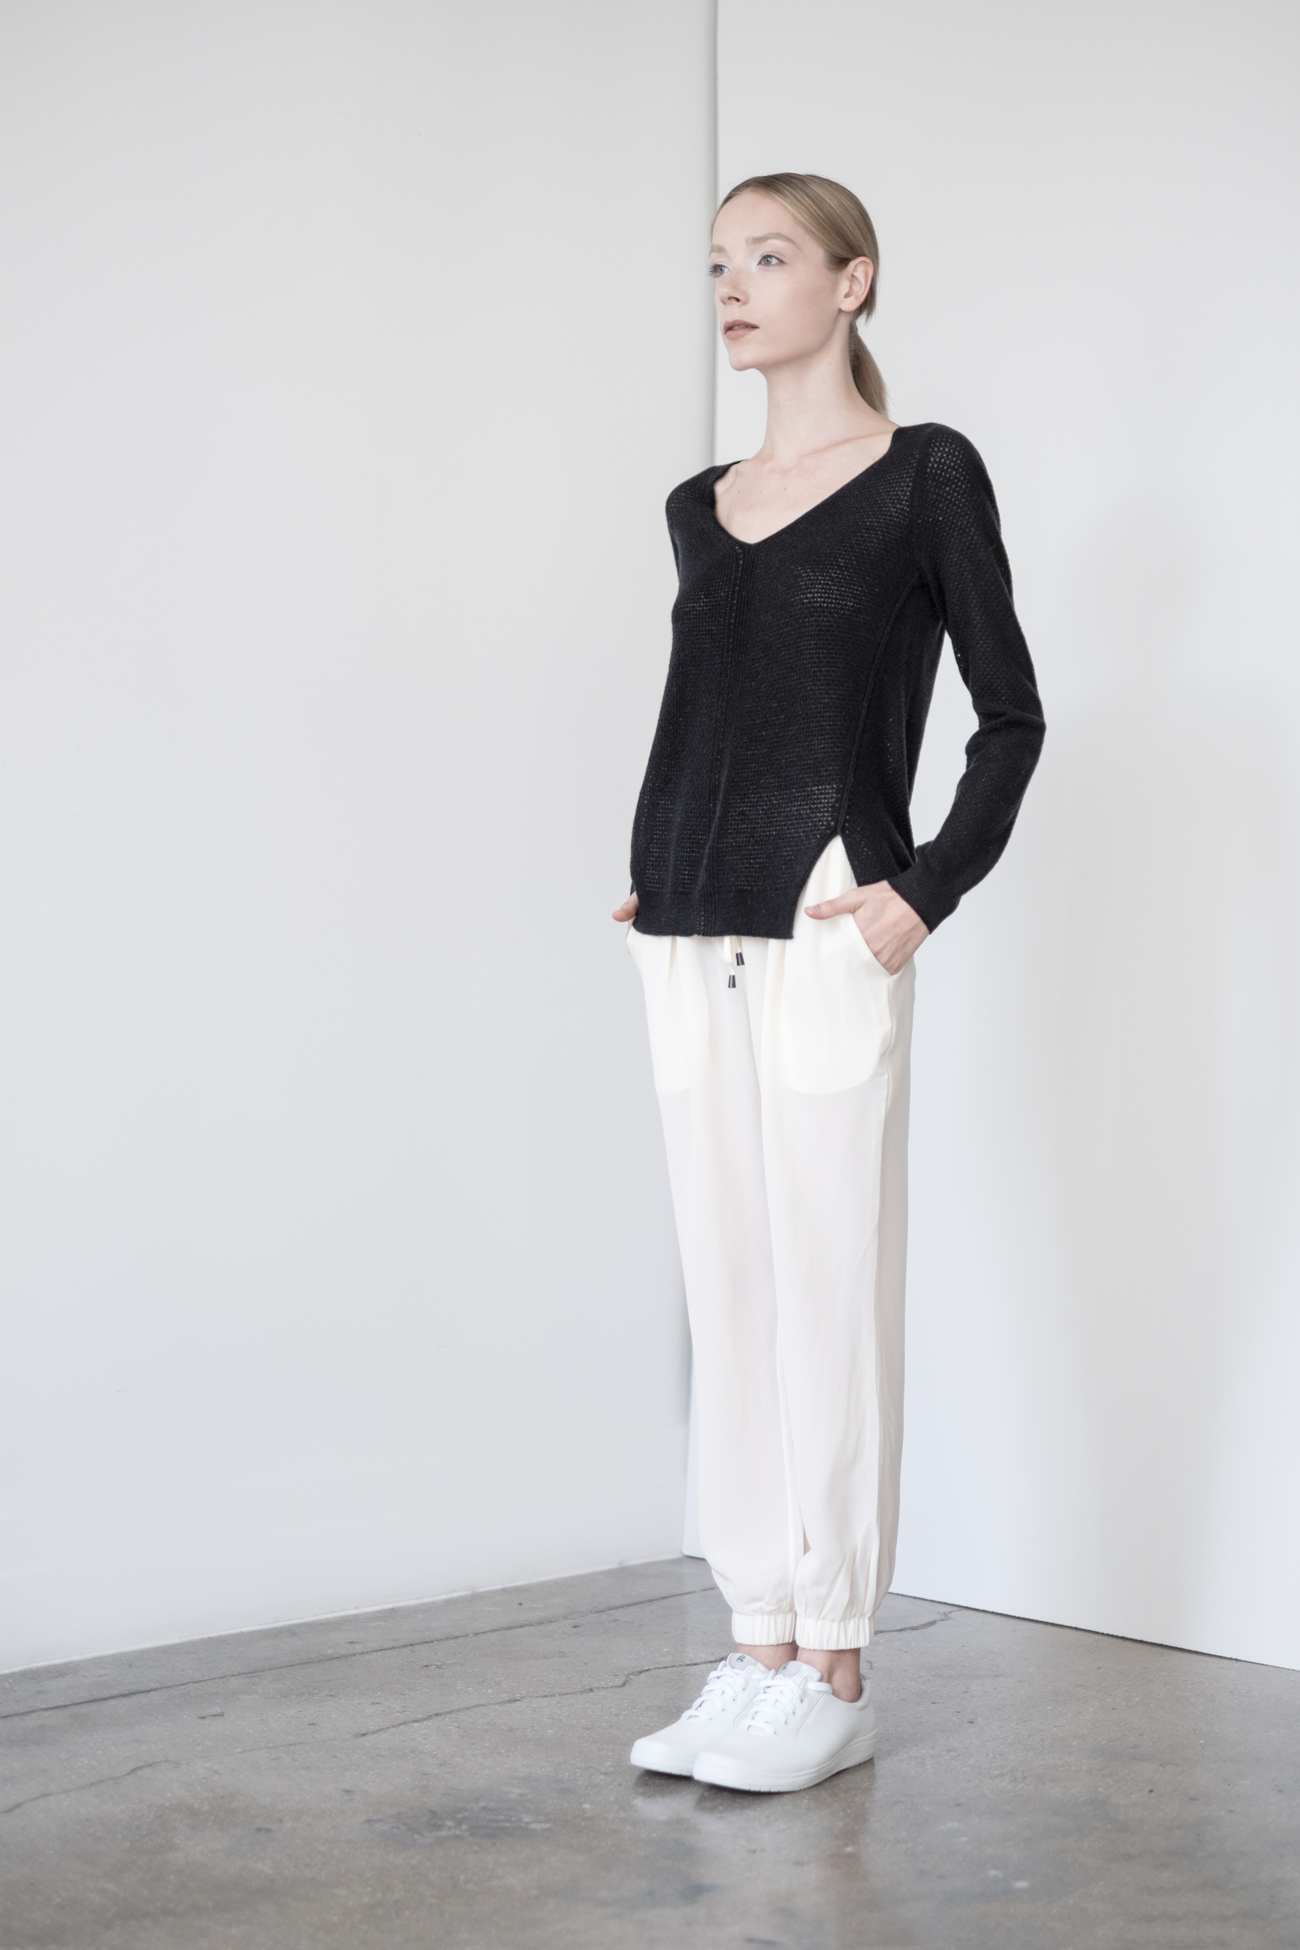 LOOK 39   TOP:   2276  / Noir   -     Audrey open mix lace stitch pullover, in fine gauge cashmere. WS:  132   BOTTOM:   2203  / Bone -    Jogger pants in 100% Silk. WS:  123